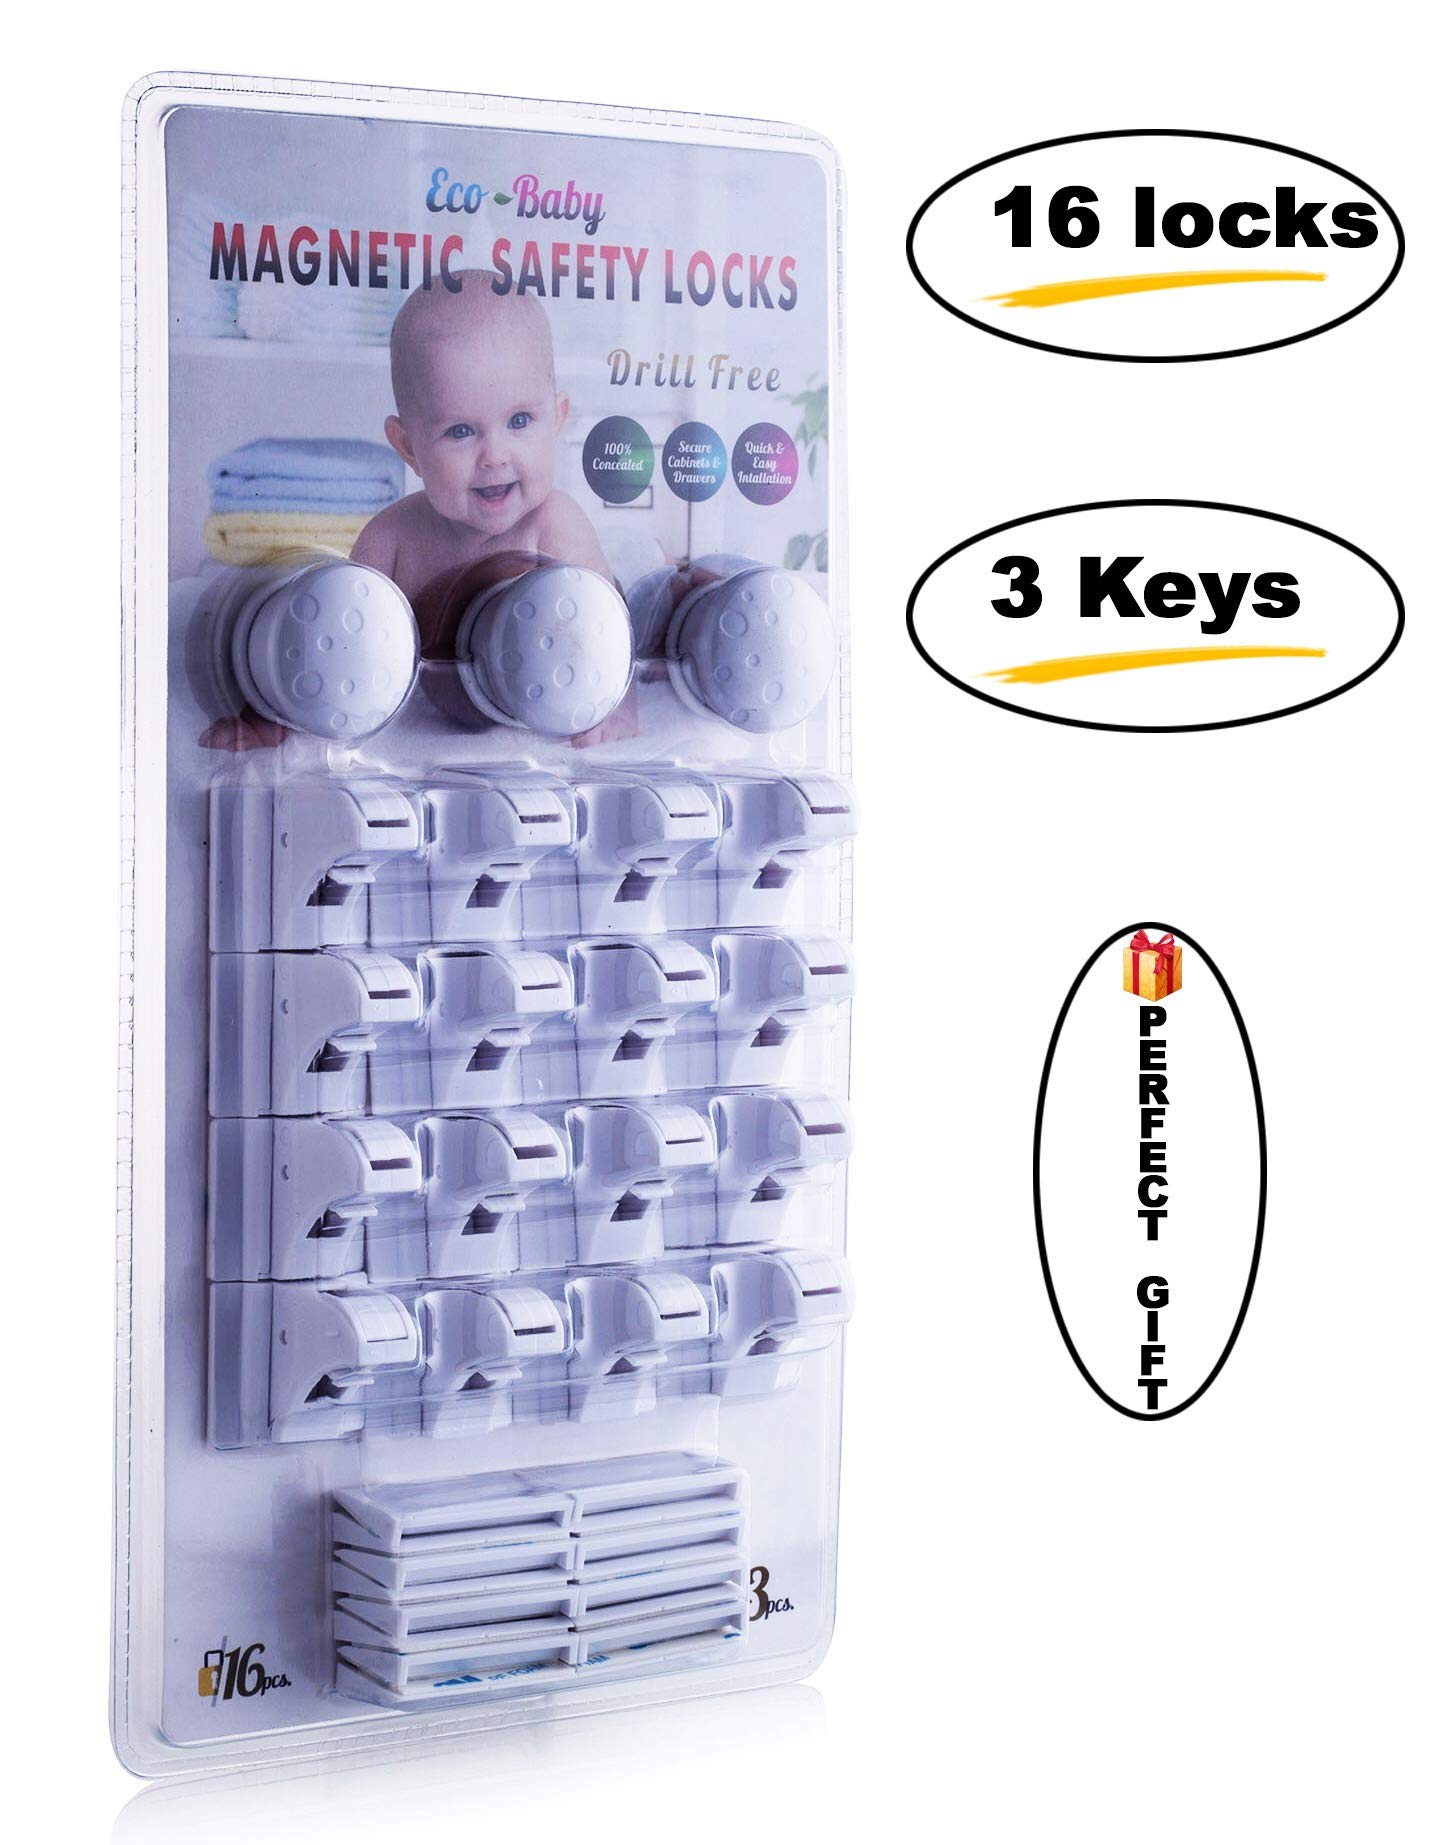 Eco-Baby Magnetic Cabinet Locks Child Safety for Drawers and Cabinets - Kitchen Child Proof Cabinet Locks - Baby Proofing Safety (16 Locks & 3 Keys) by Eco-Baby (Image #3)